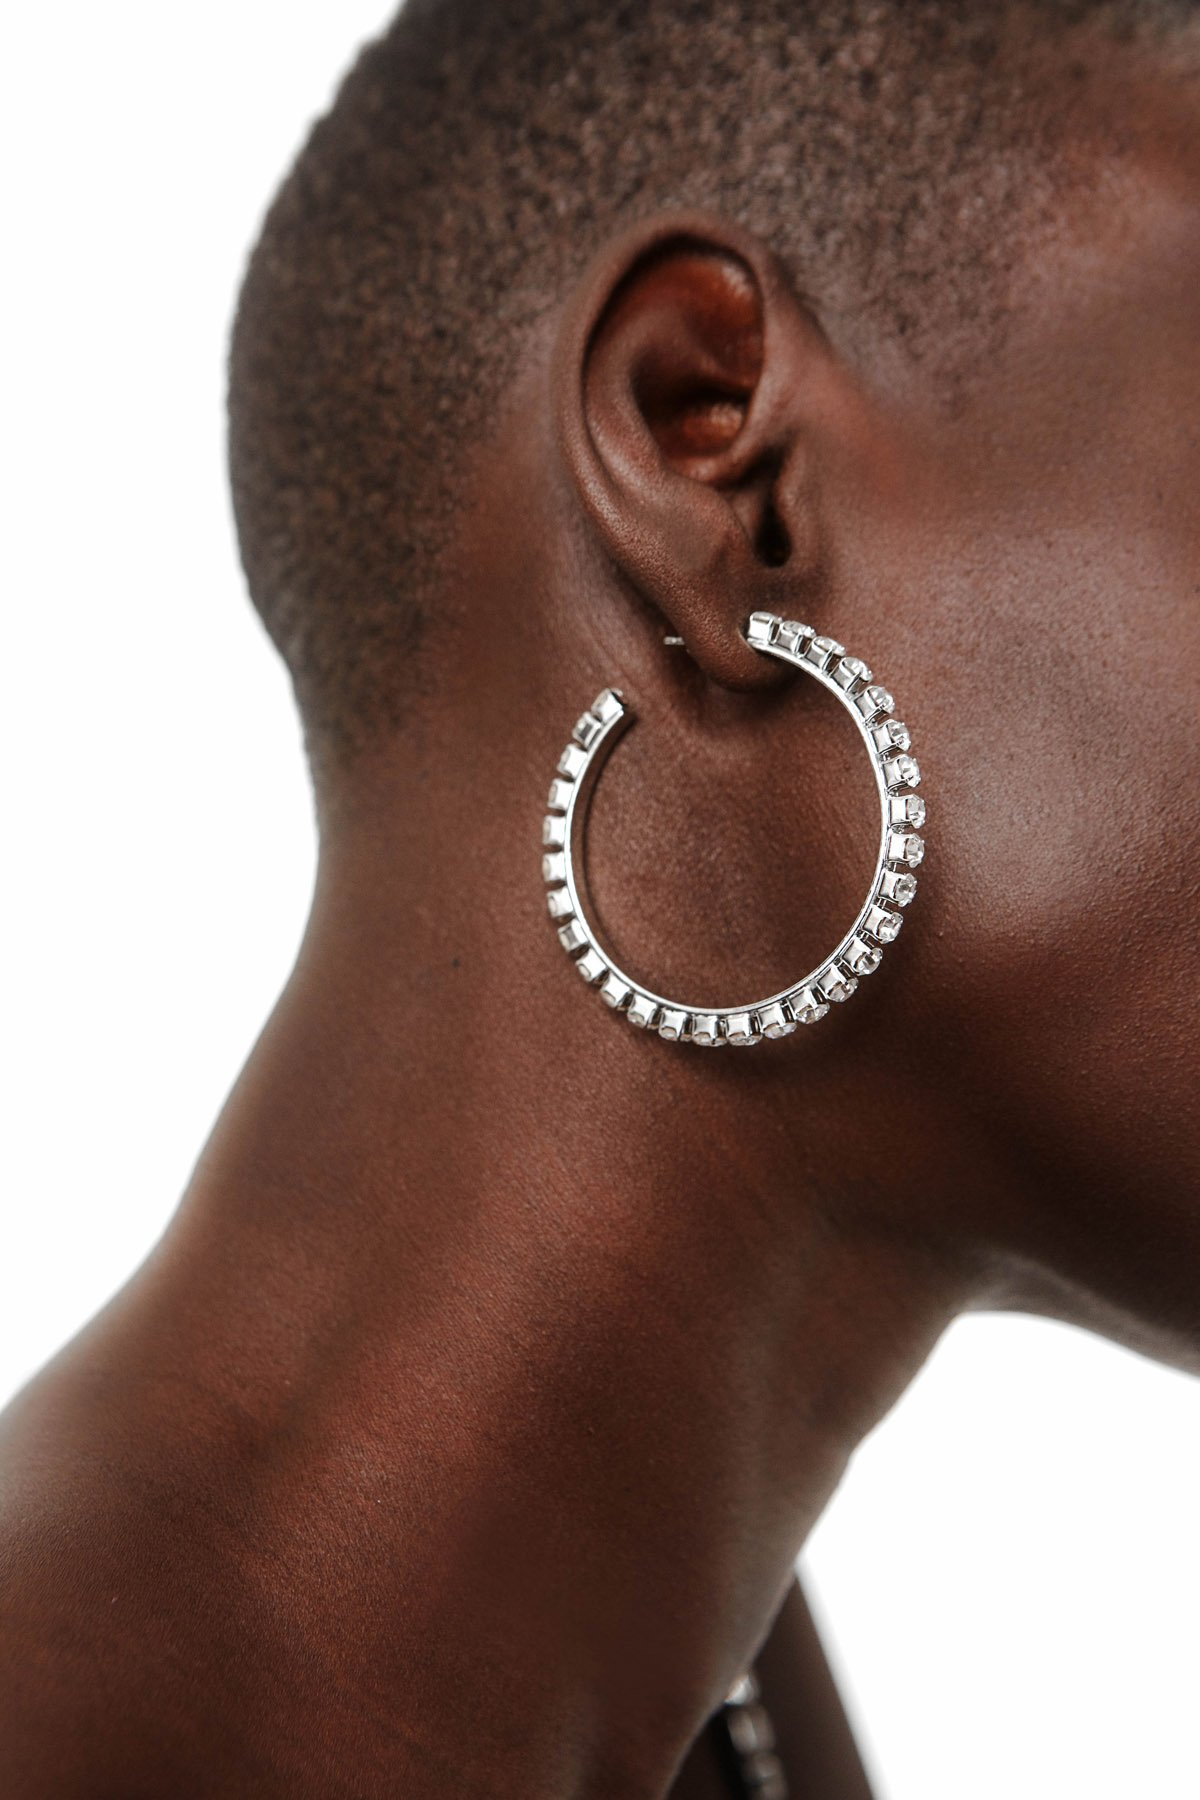 2-inch hoop earrings crafted of polished silvertone brass set with shimmering white Preciosa crystals. Imported.